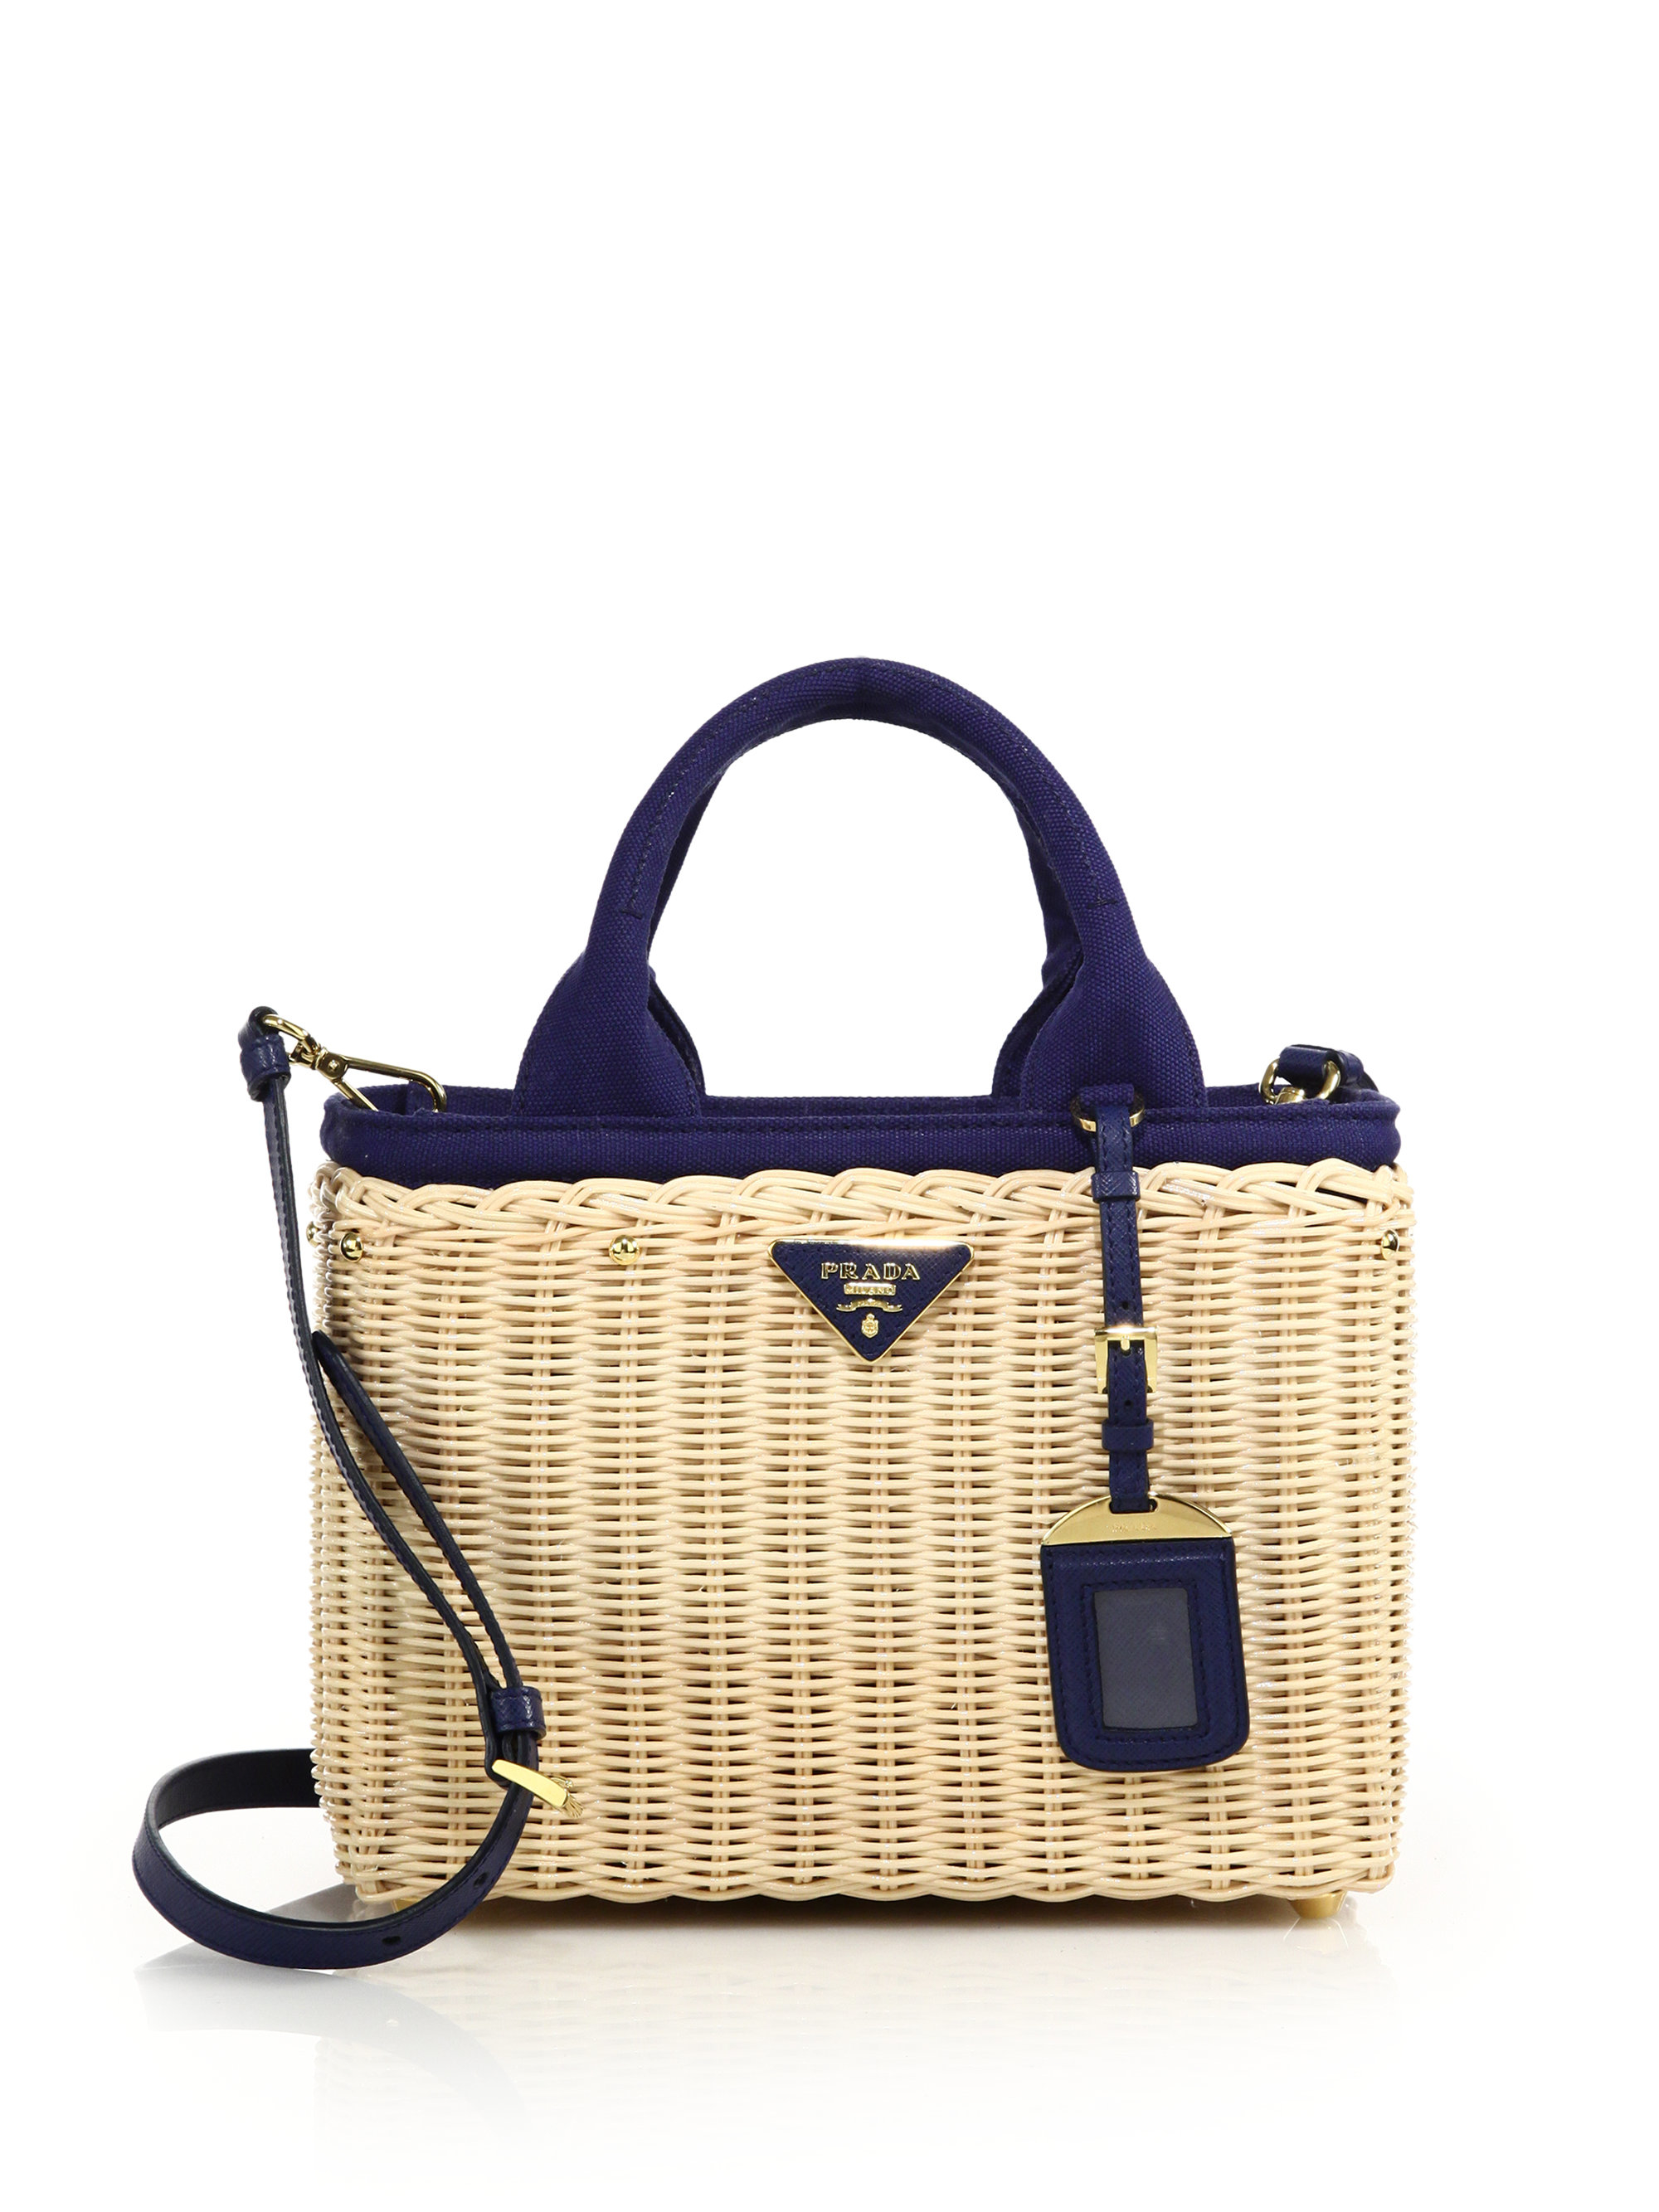 5b005b8c4846 Lyst - Prada Wicker   Canvas Tote in Blue